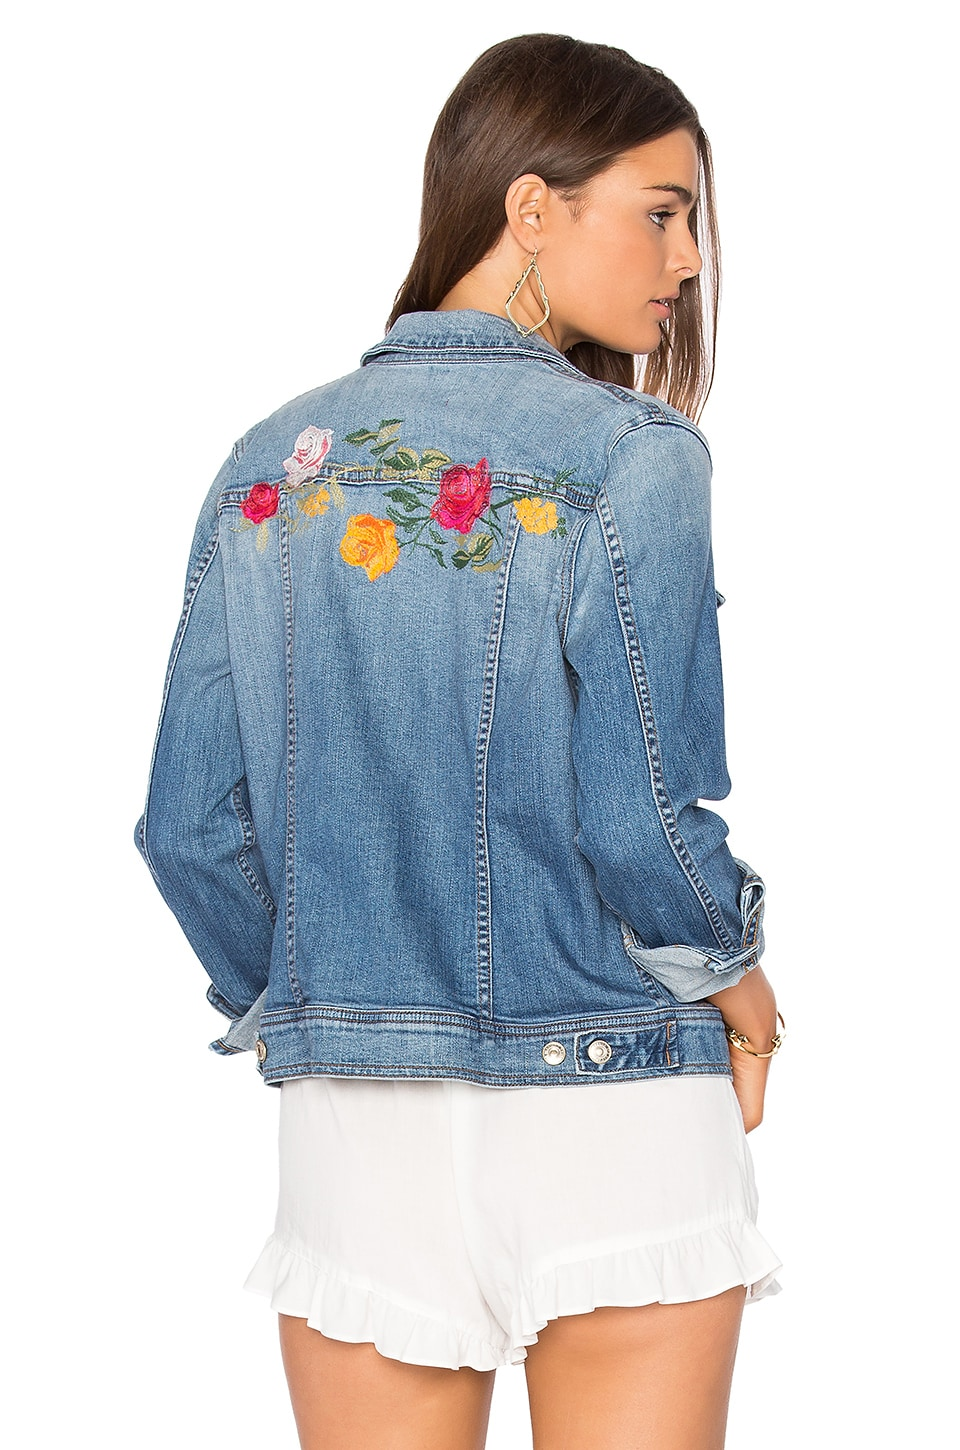 7 For All Mankind Trucker Jacket in Rose Garden Embroidered